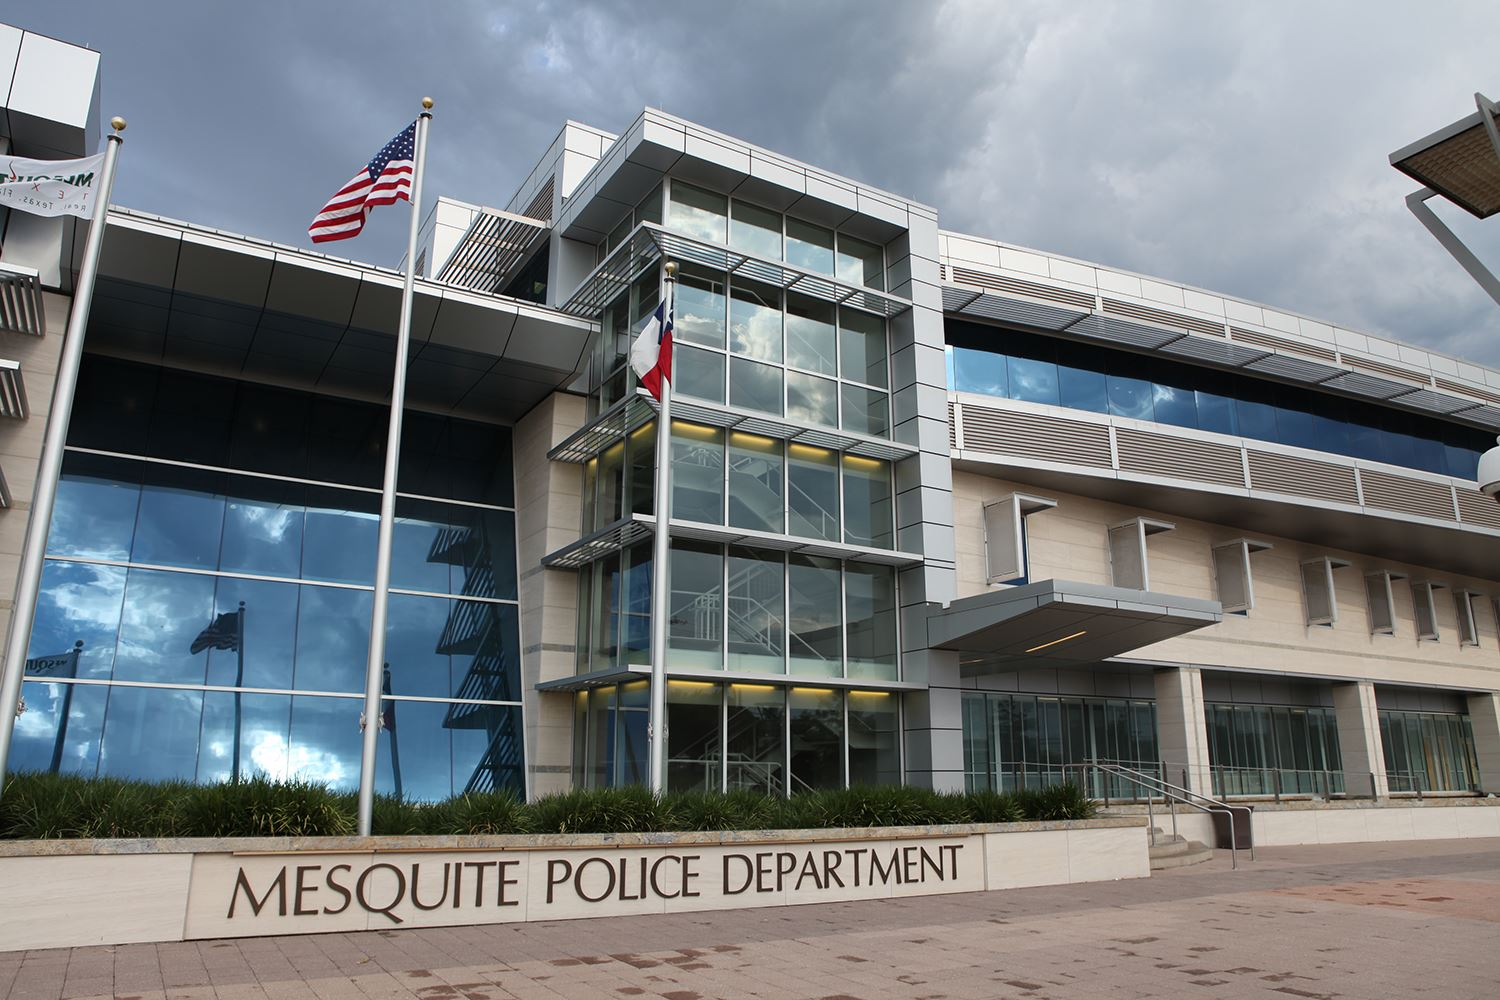 Mesquite Police Department-file photo